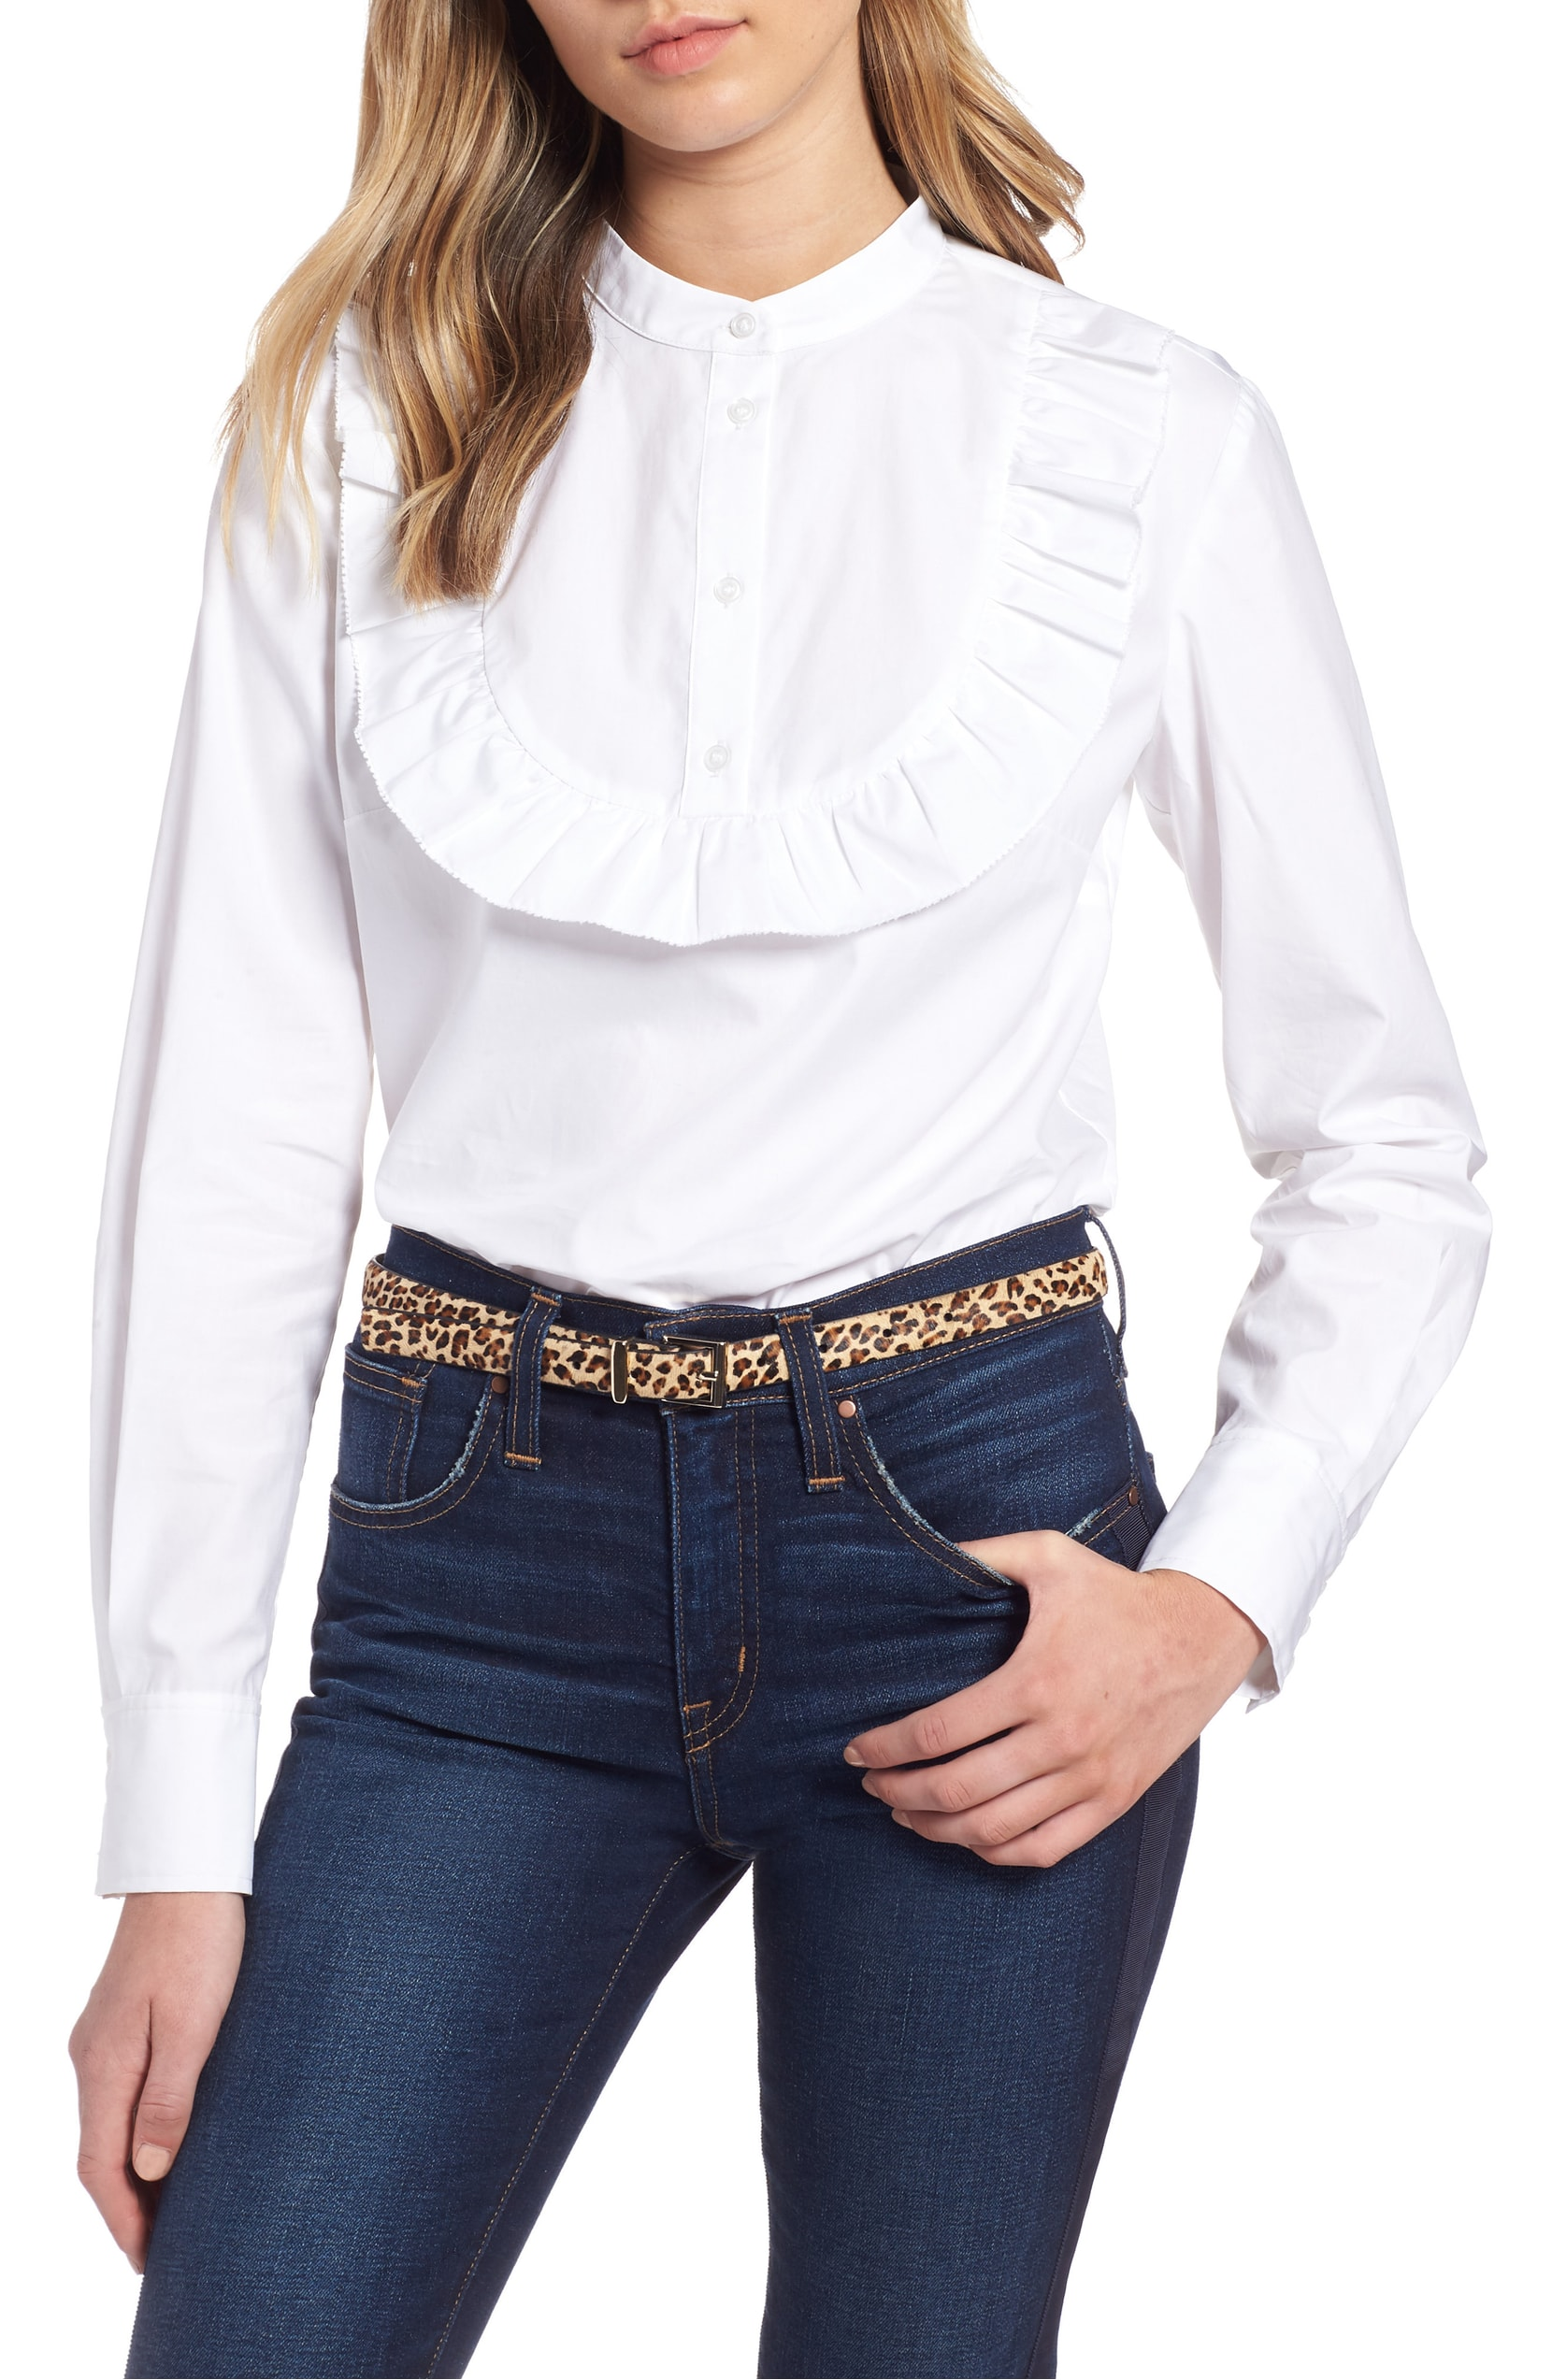 The Trend: Western. Channeling the season's Western vibe, a popover top of crisp cotton poplin features a pert ruffle tracing the curved bib. $69.00 (Image: Western){ }